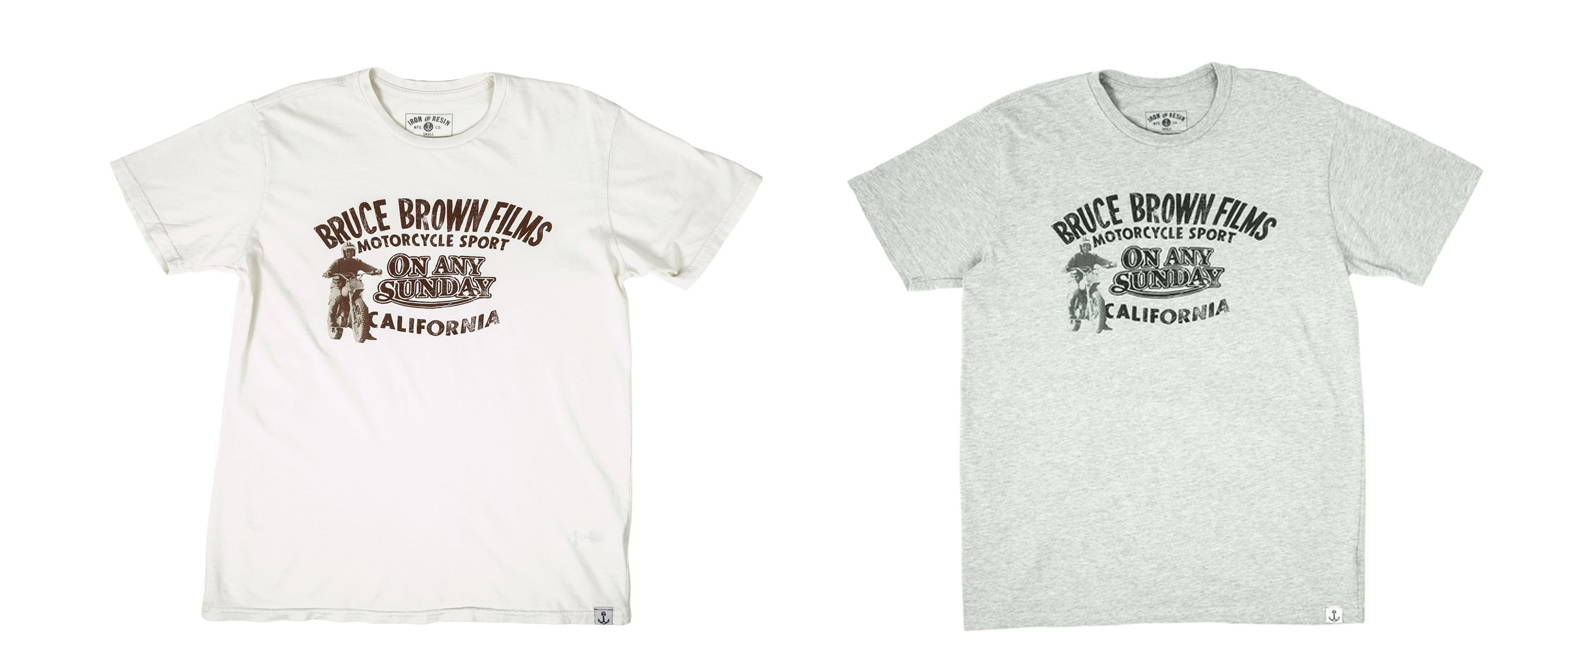 Iron & Resin X Bruce Brown Films On Any Sunday Graphic T-Shirt